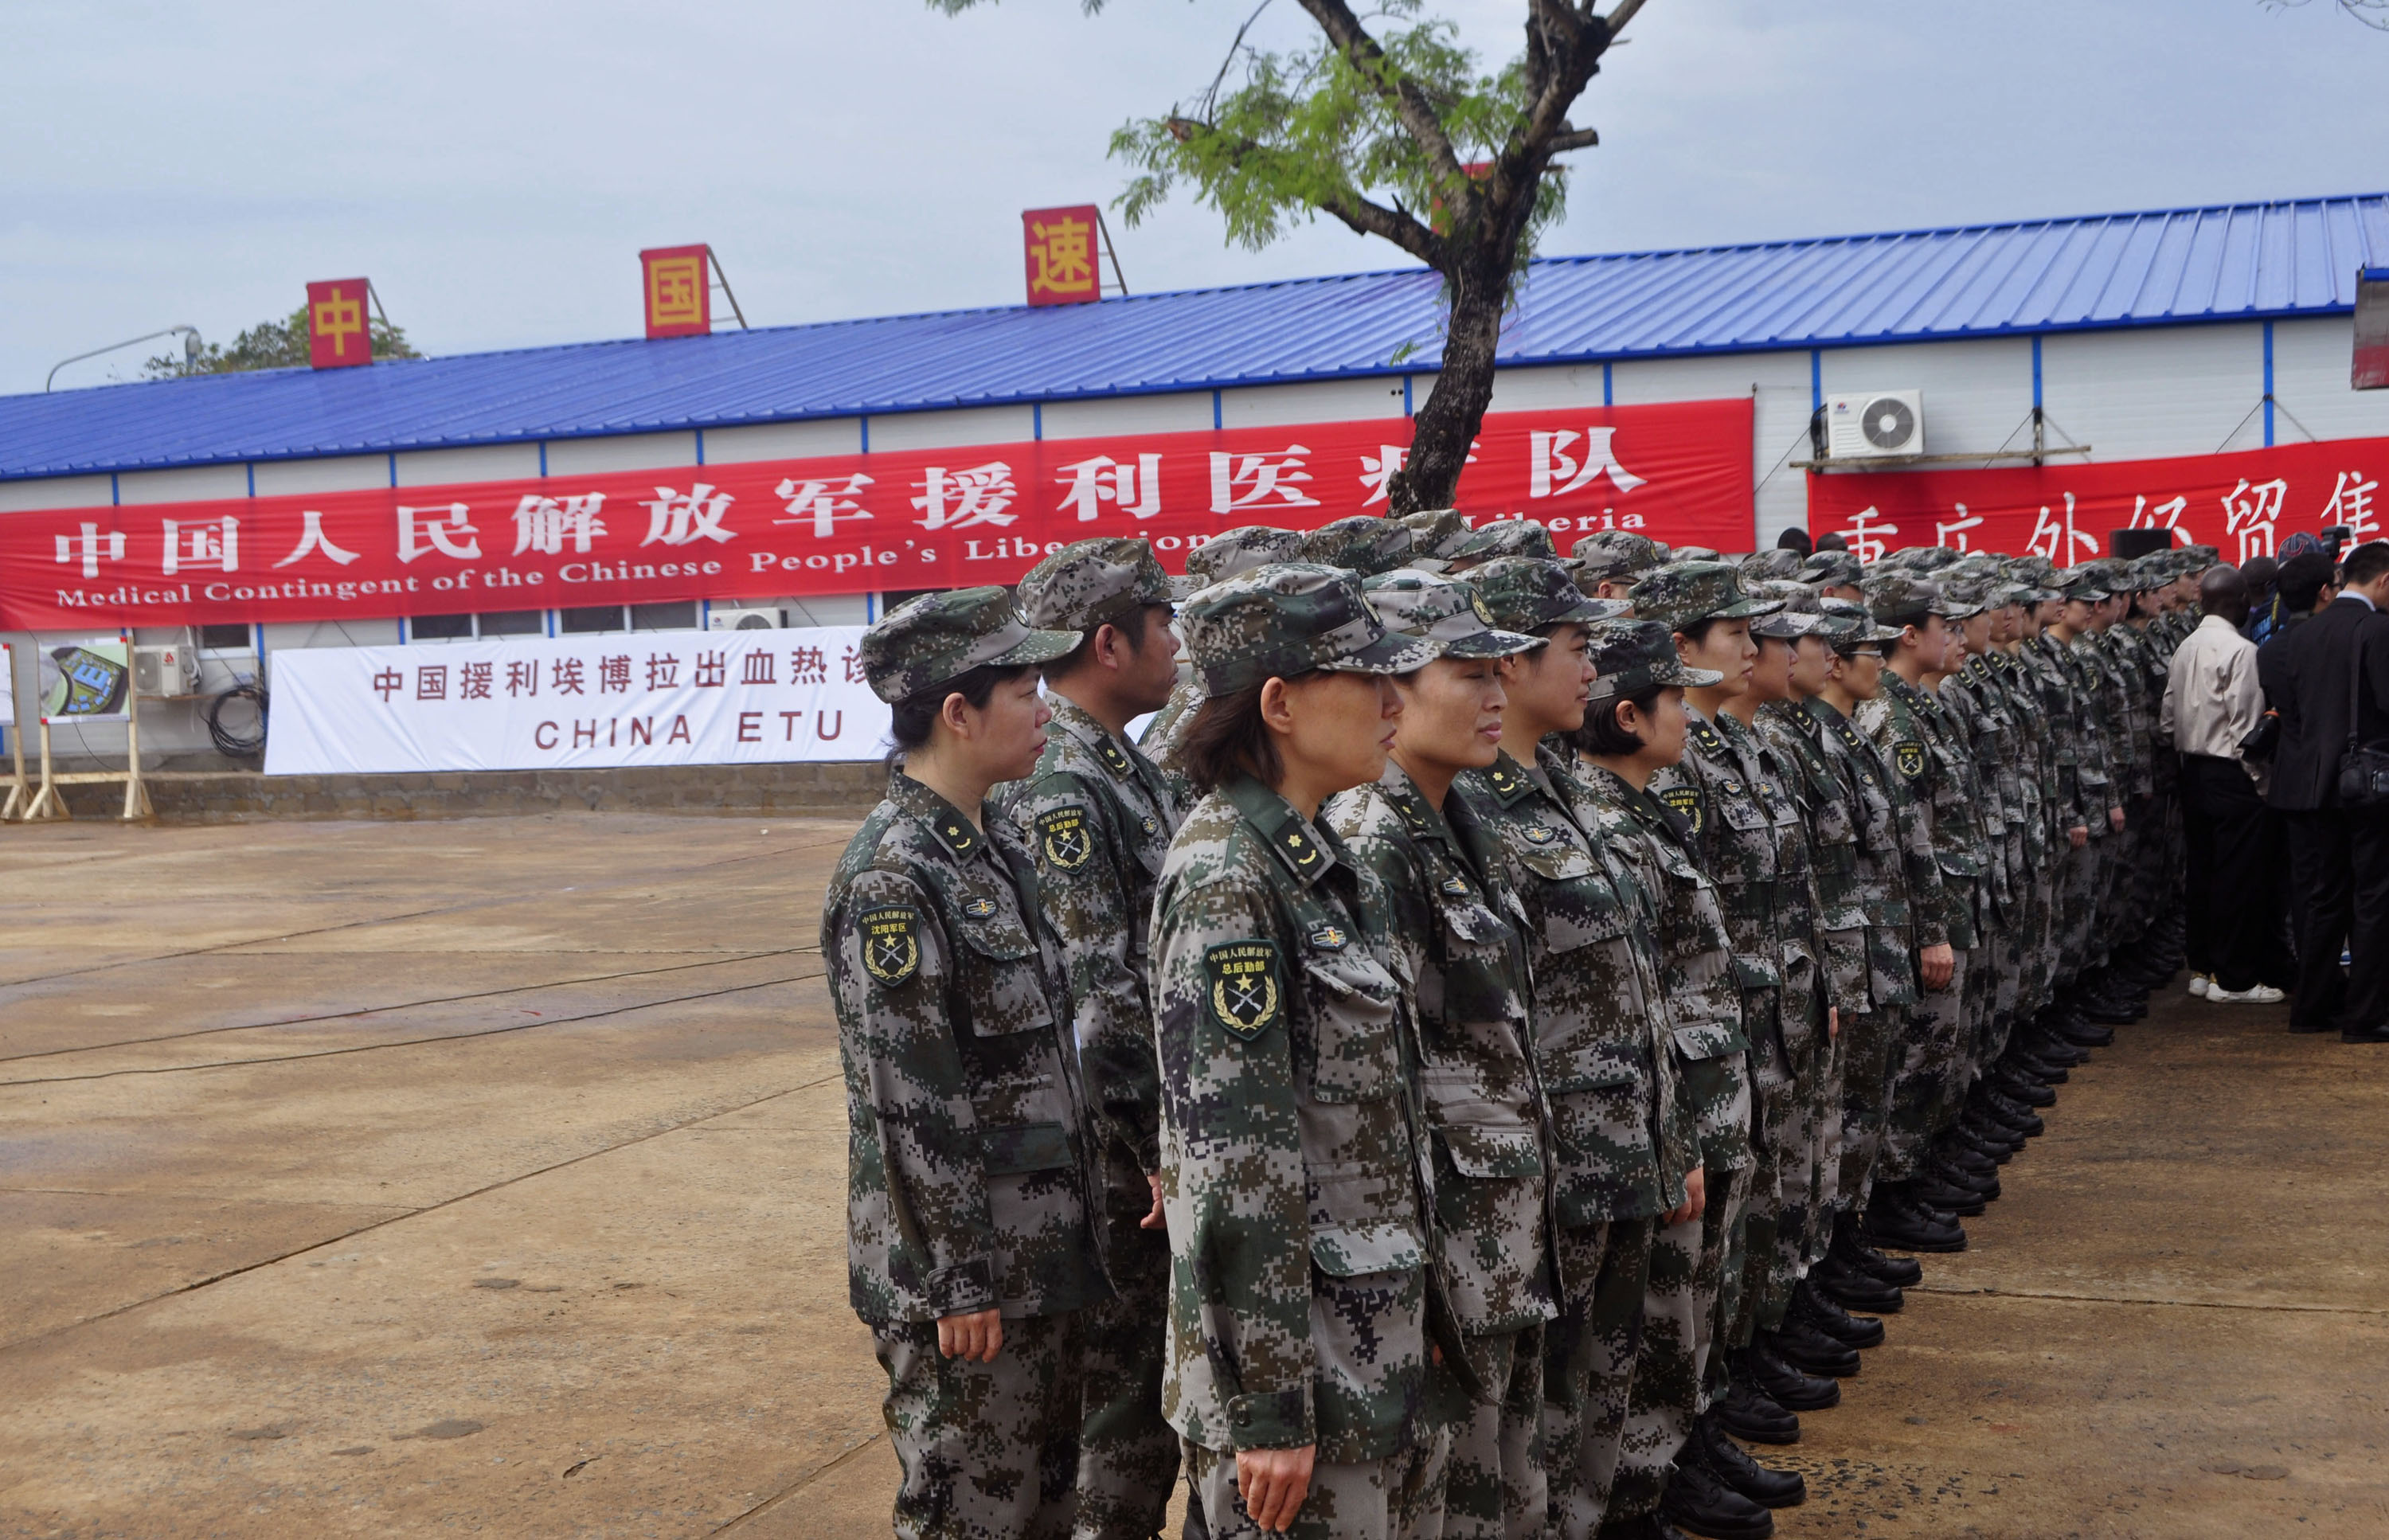 China builds Ebola treatment center in Liberia - CBS News